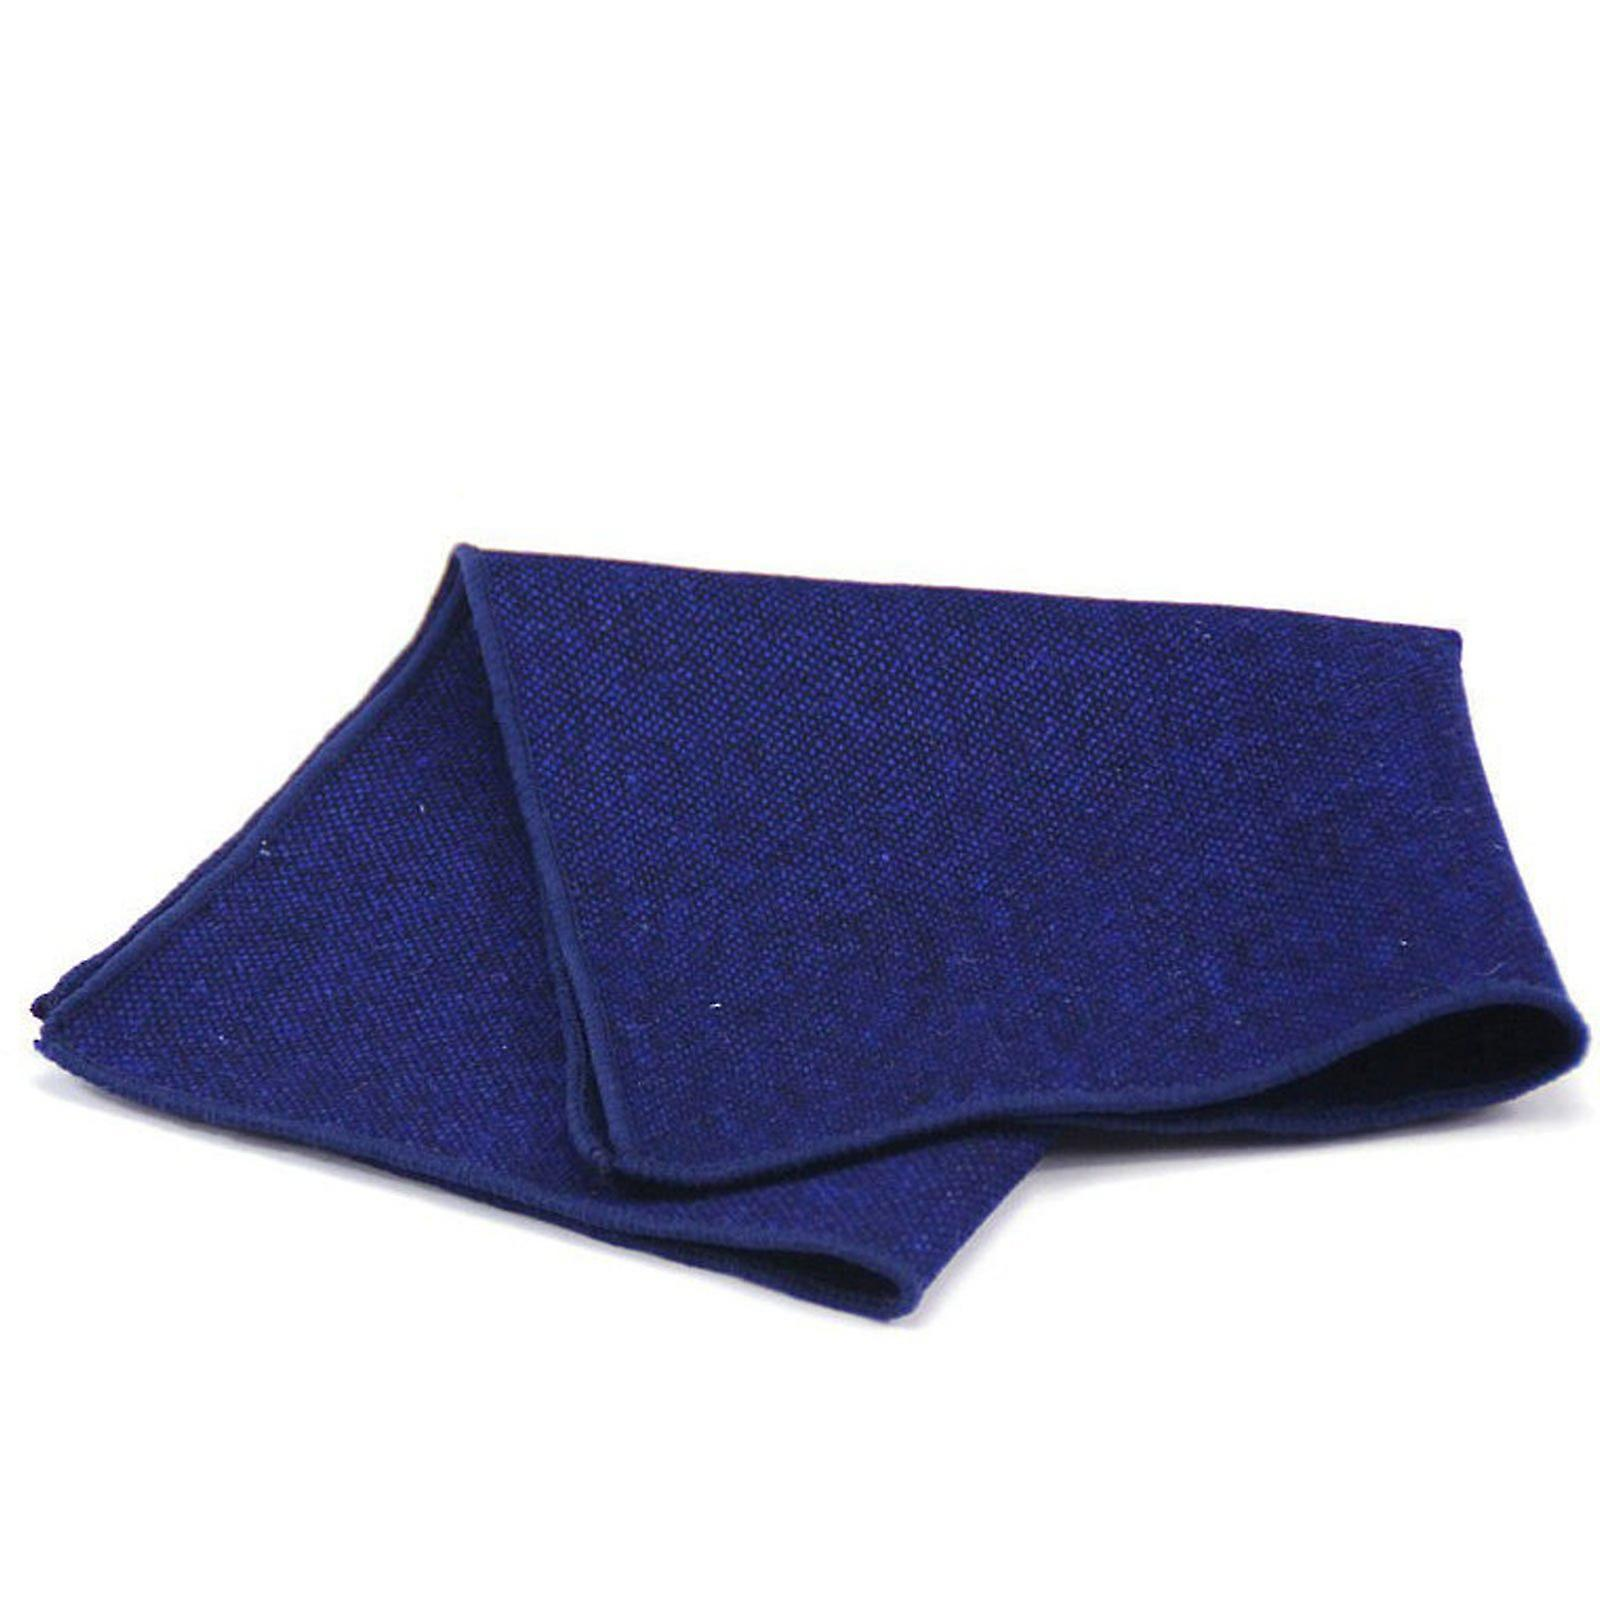 Blue thick tweed rugged look men's wool pocket square